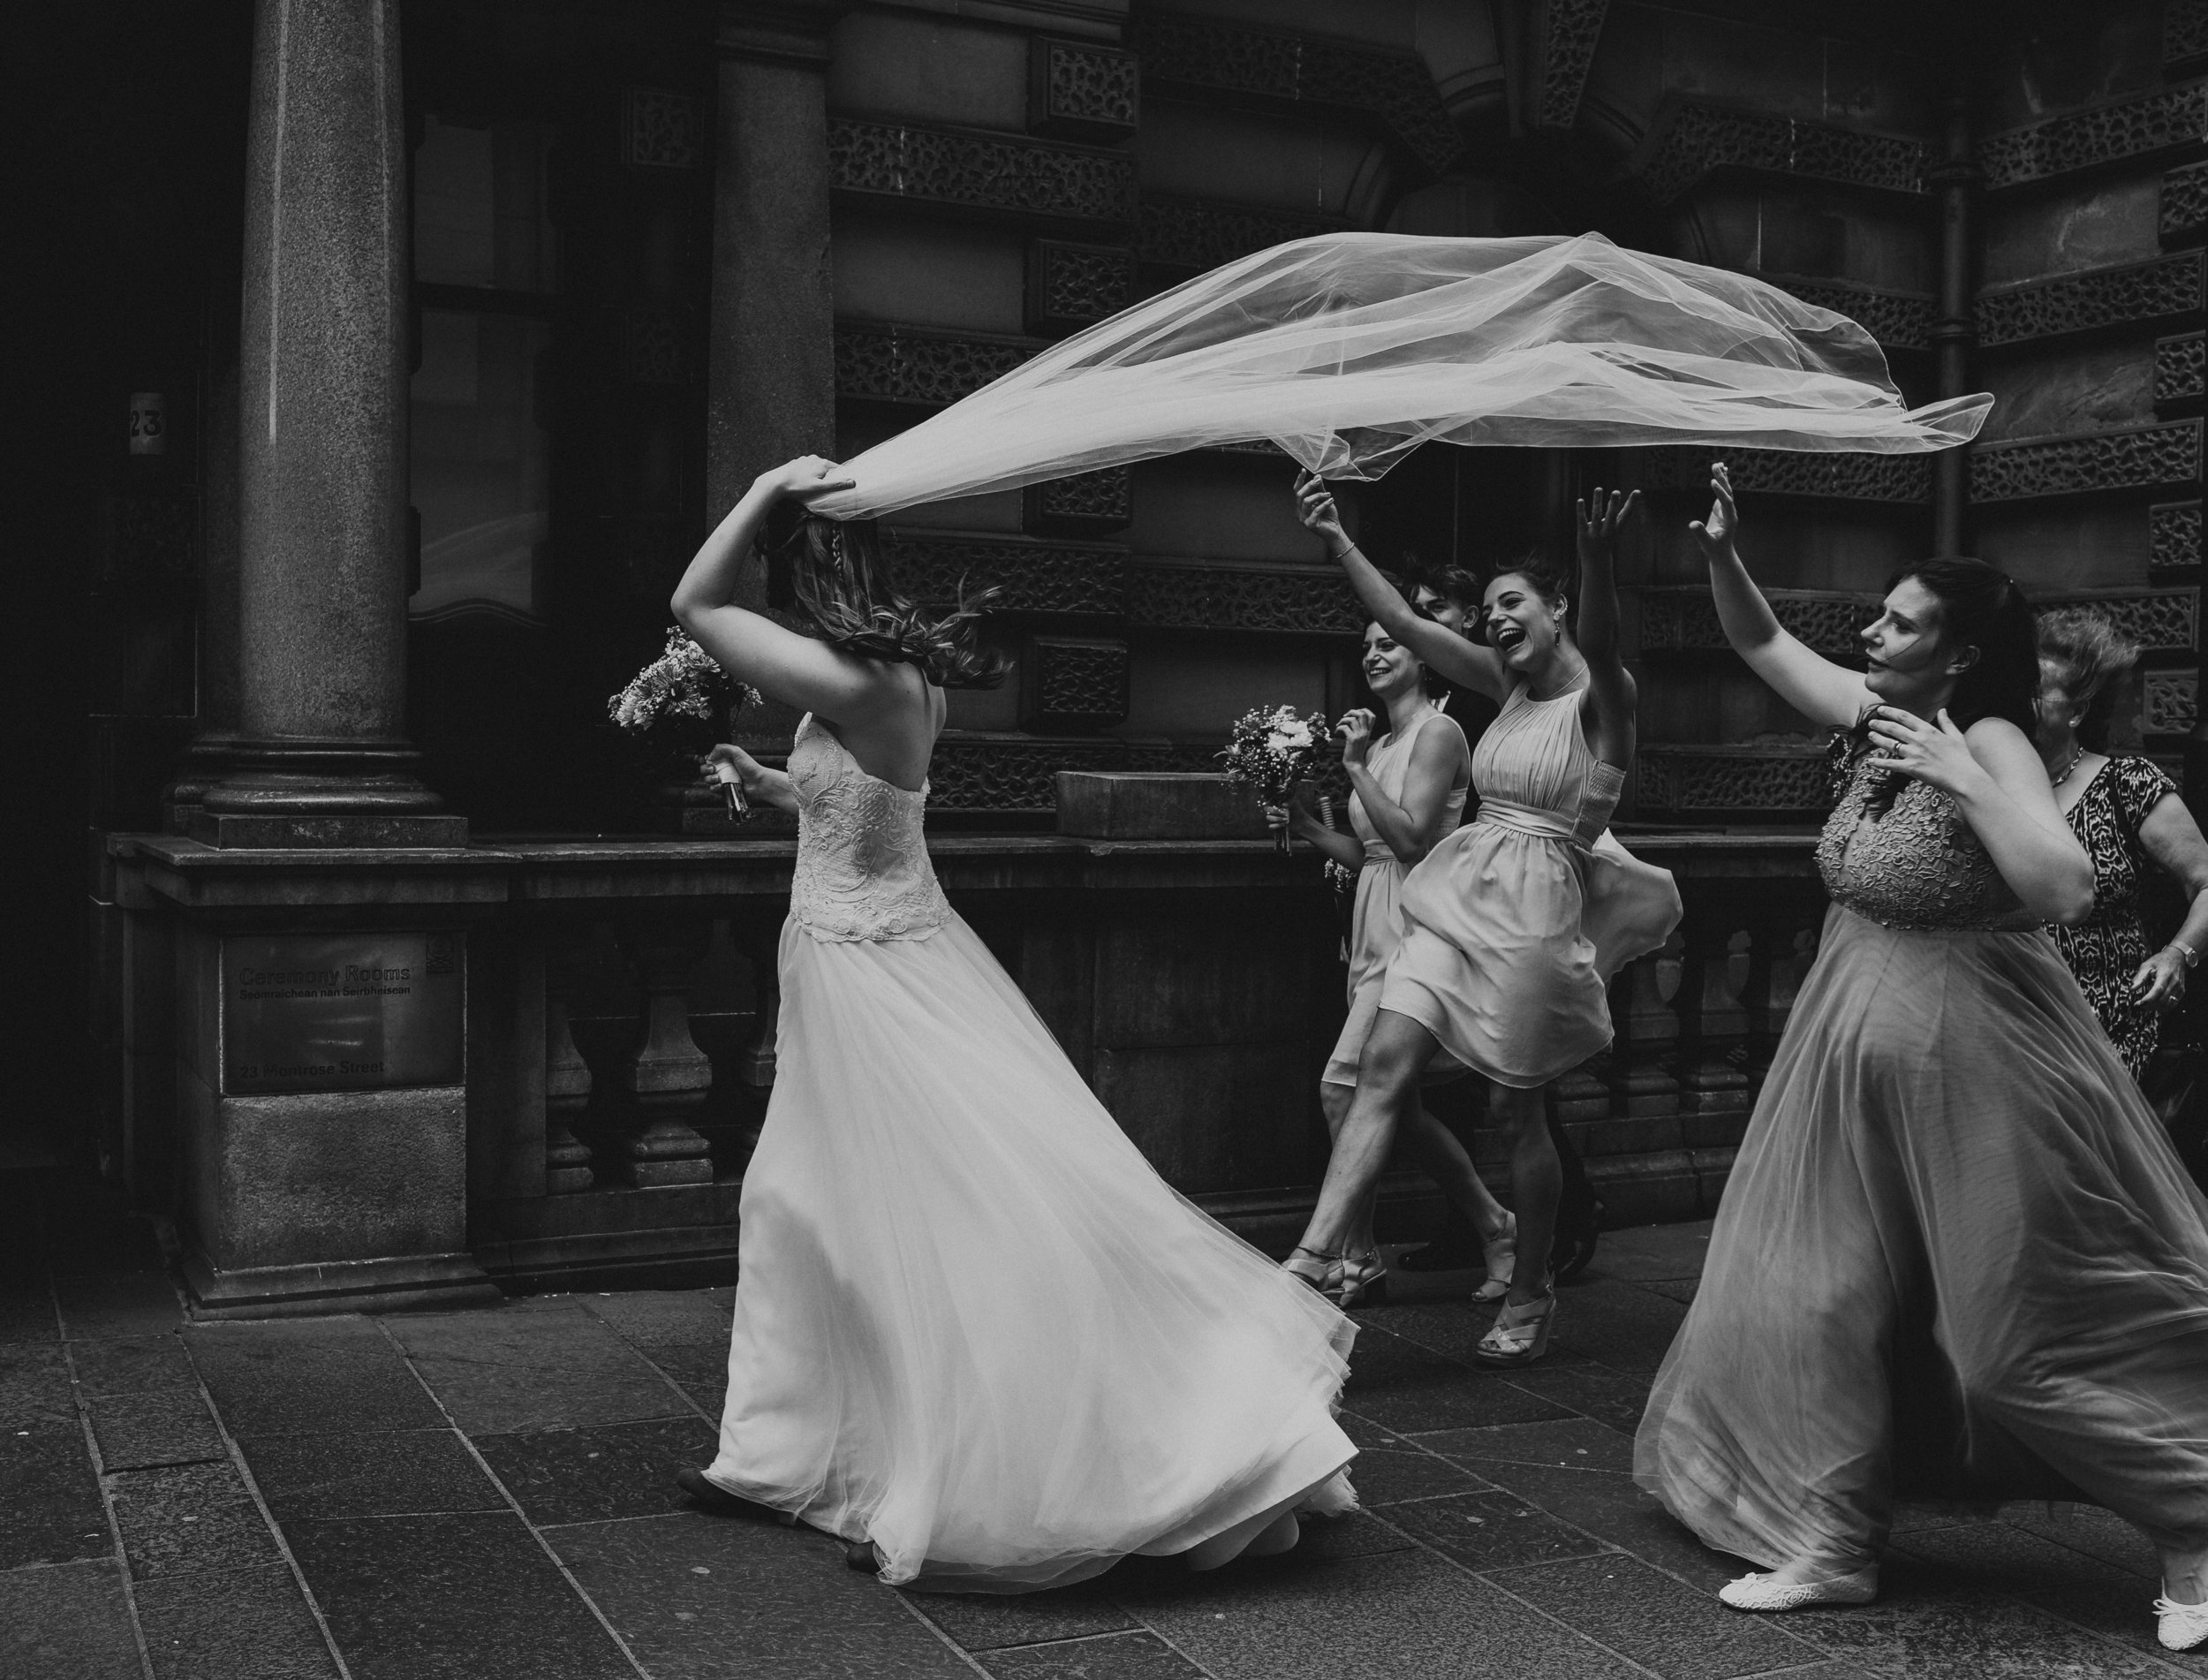 ALTERNATIVE_GLASGOW_CITY_WEDDING_PJ_PHILLIPS_PHOTOGRAPHY_WEDDING_PHOTOGRAPHY_37.jpg